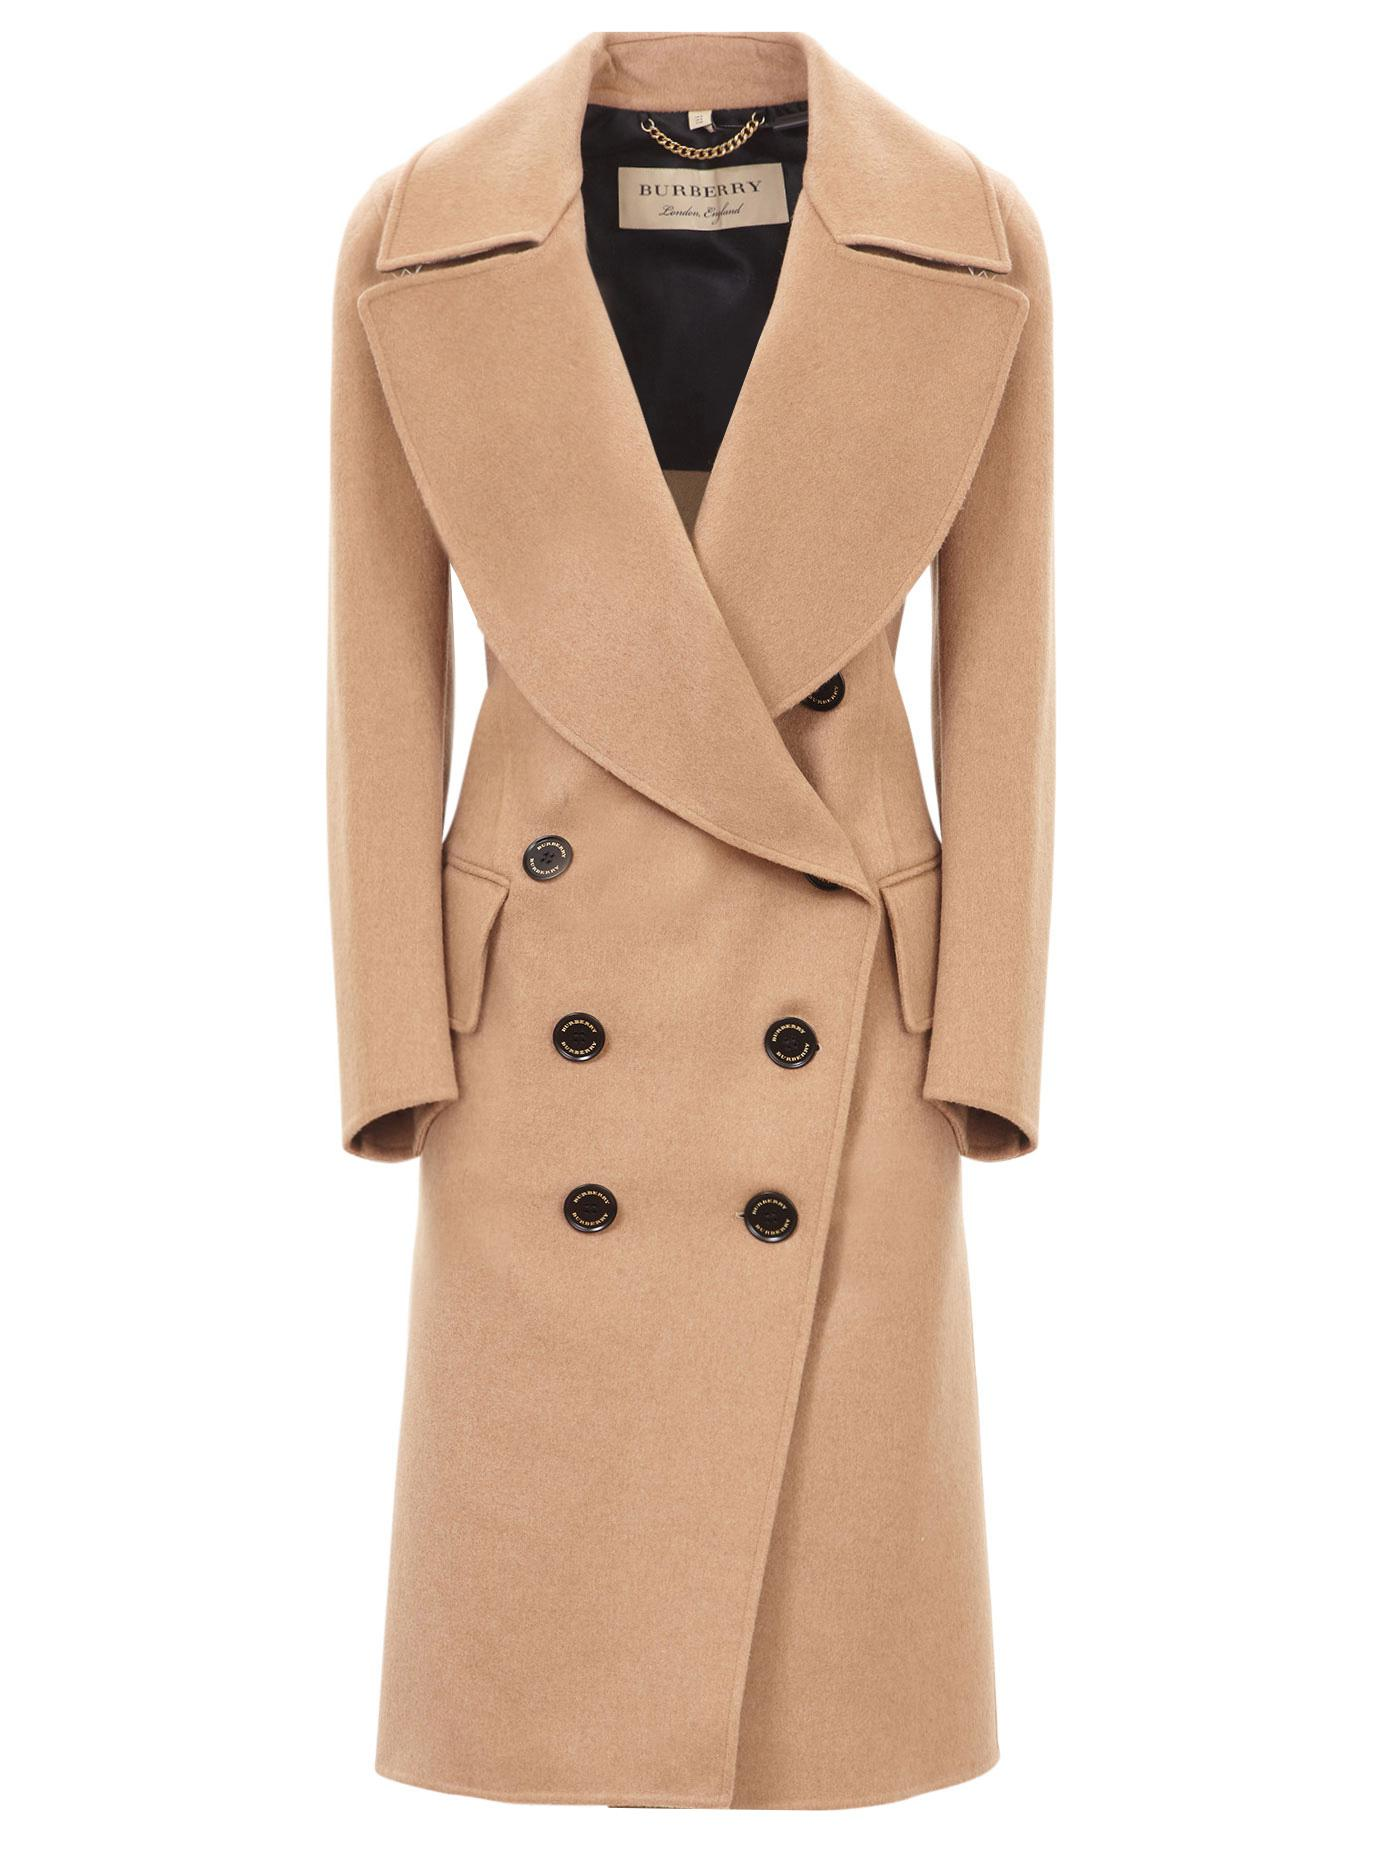 1919817e045cdd Lyst - Burberry Double Breasted Camel Hair Coat in Natural